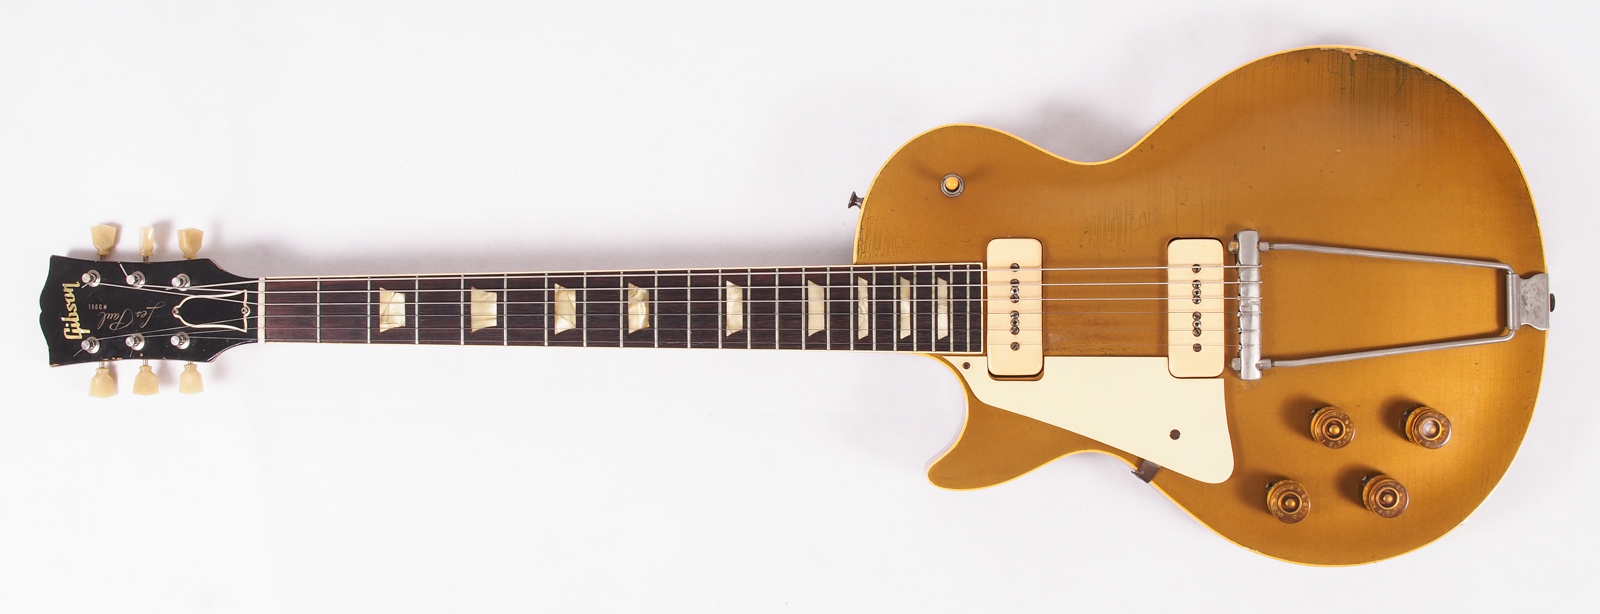 Original Gibson 1952 Les Paul Goldtop